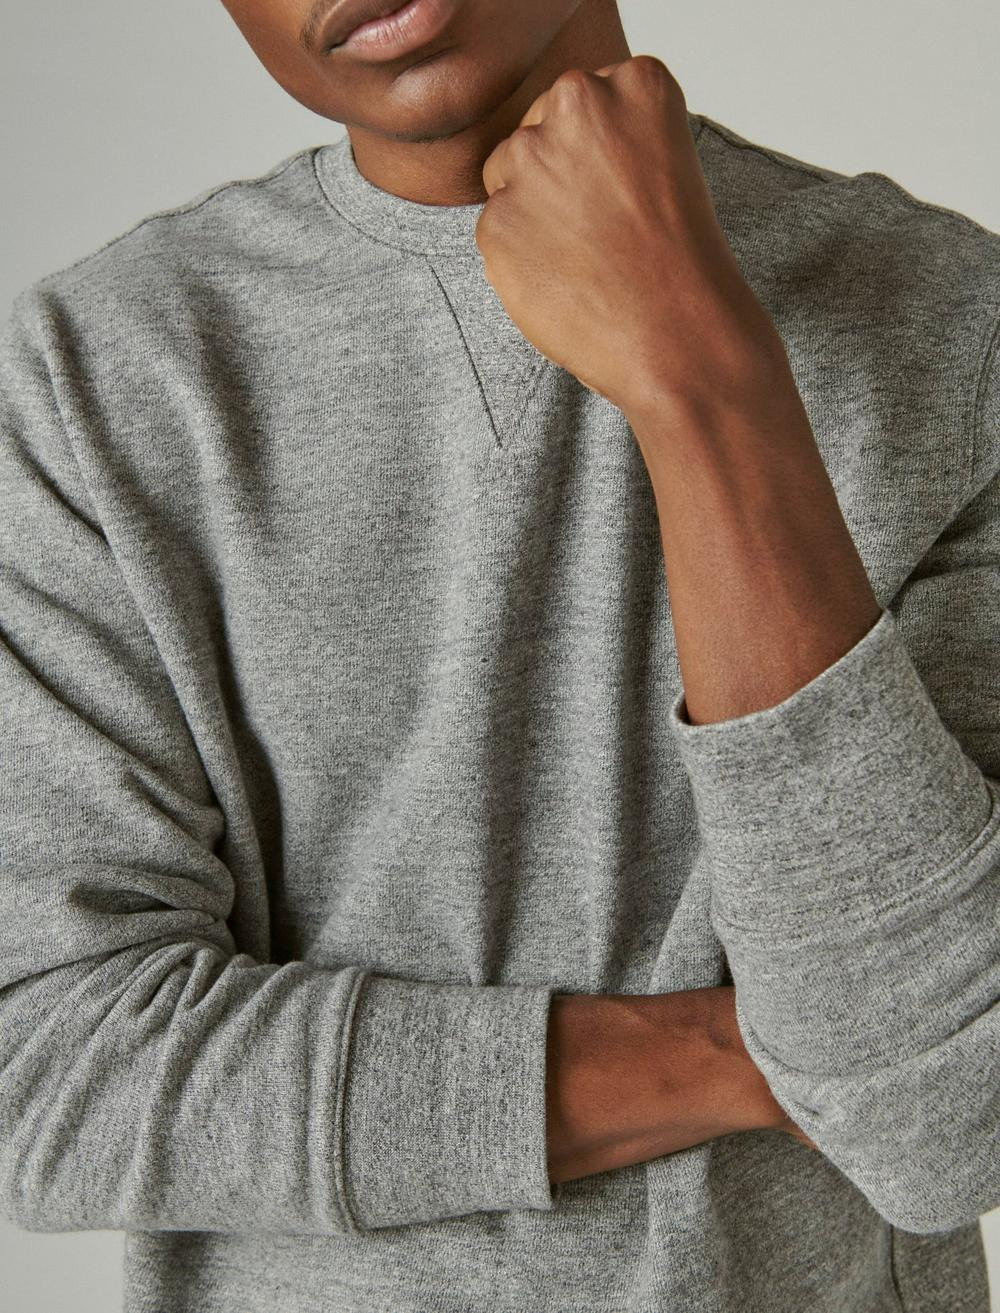 SUEDED FRENCH TERRY CREW SWEATSHIRT, image 5